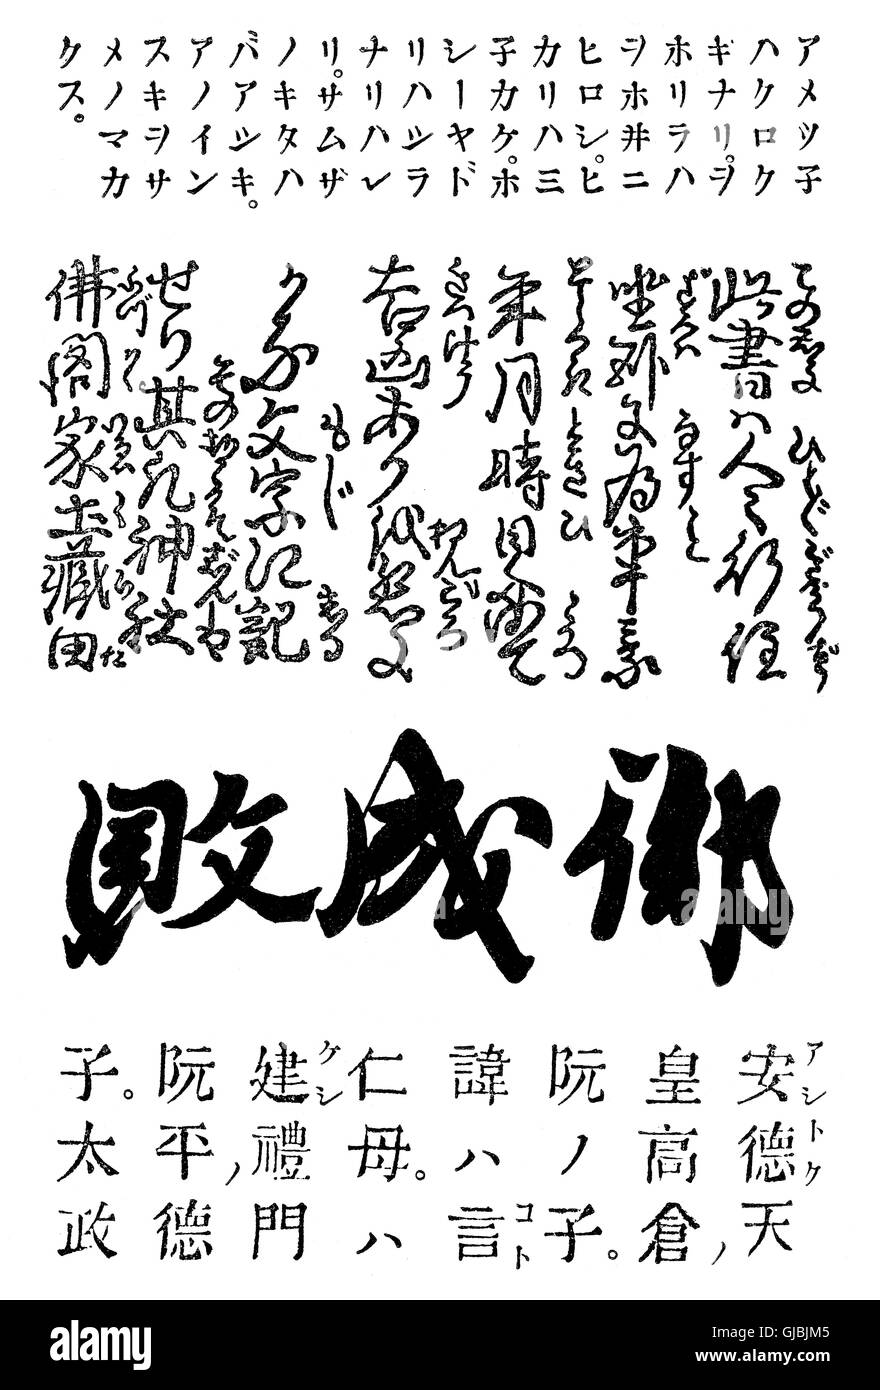 Old Japanese and Chinese characters - Stock Image